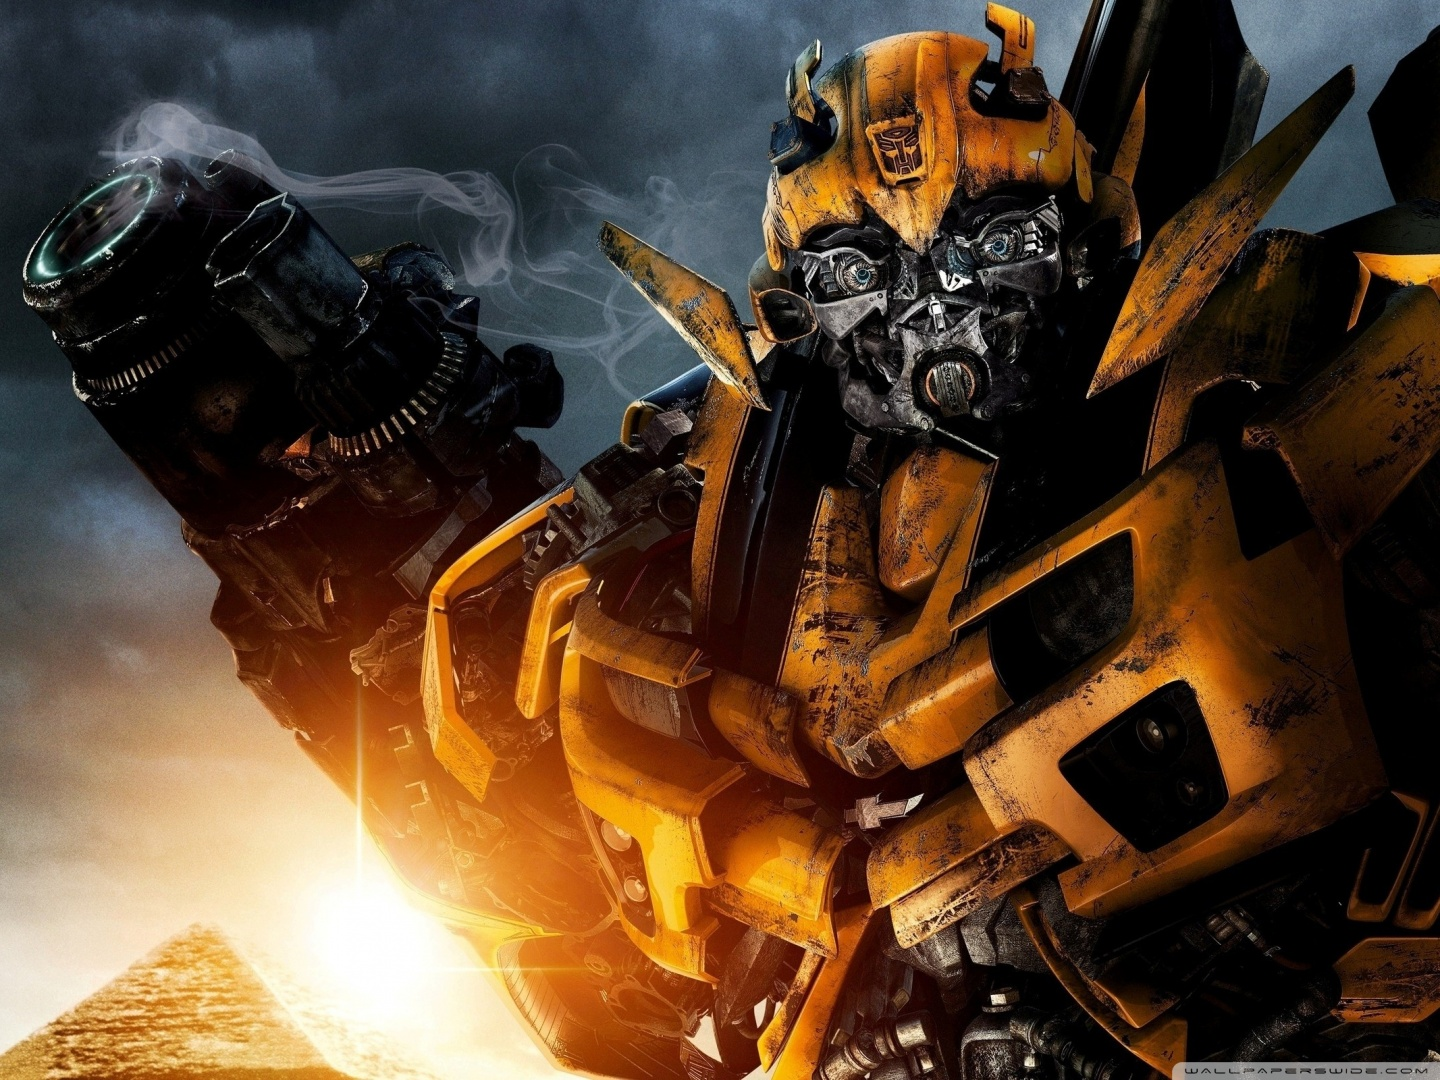 transformers_bumblebee-wallpaper-1440x1080